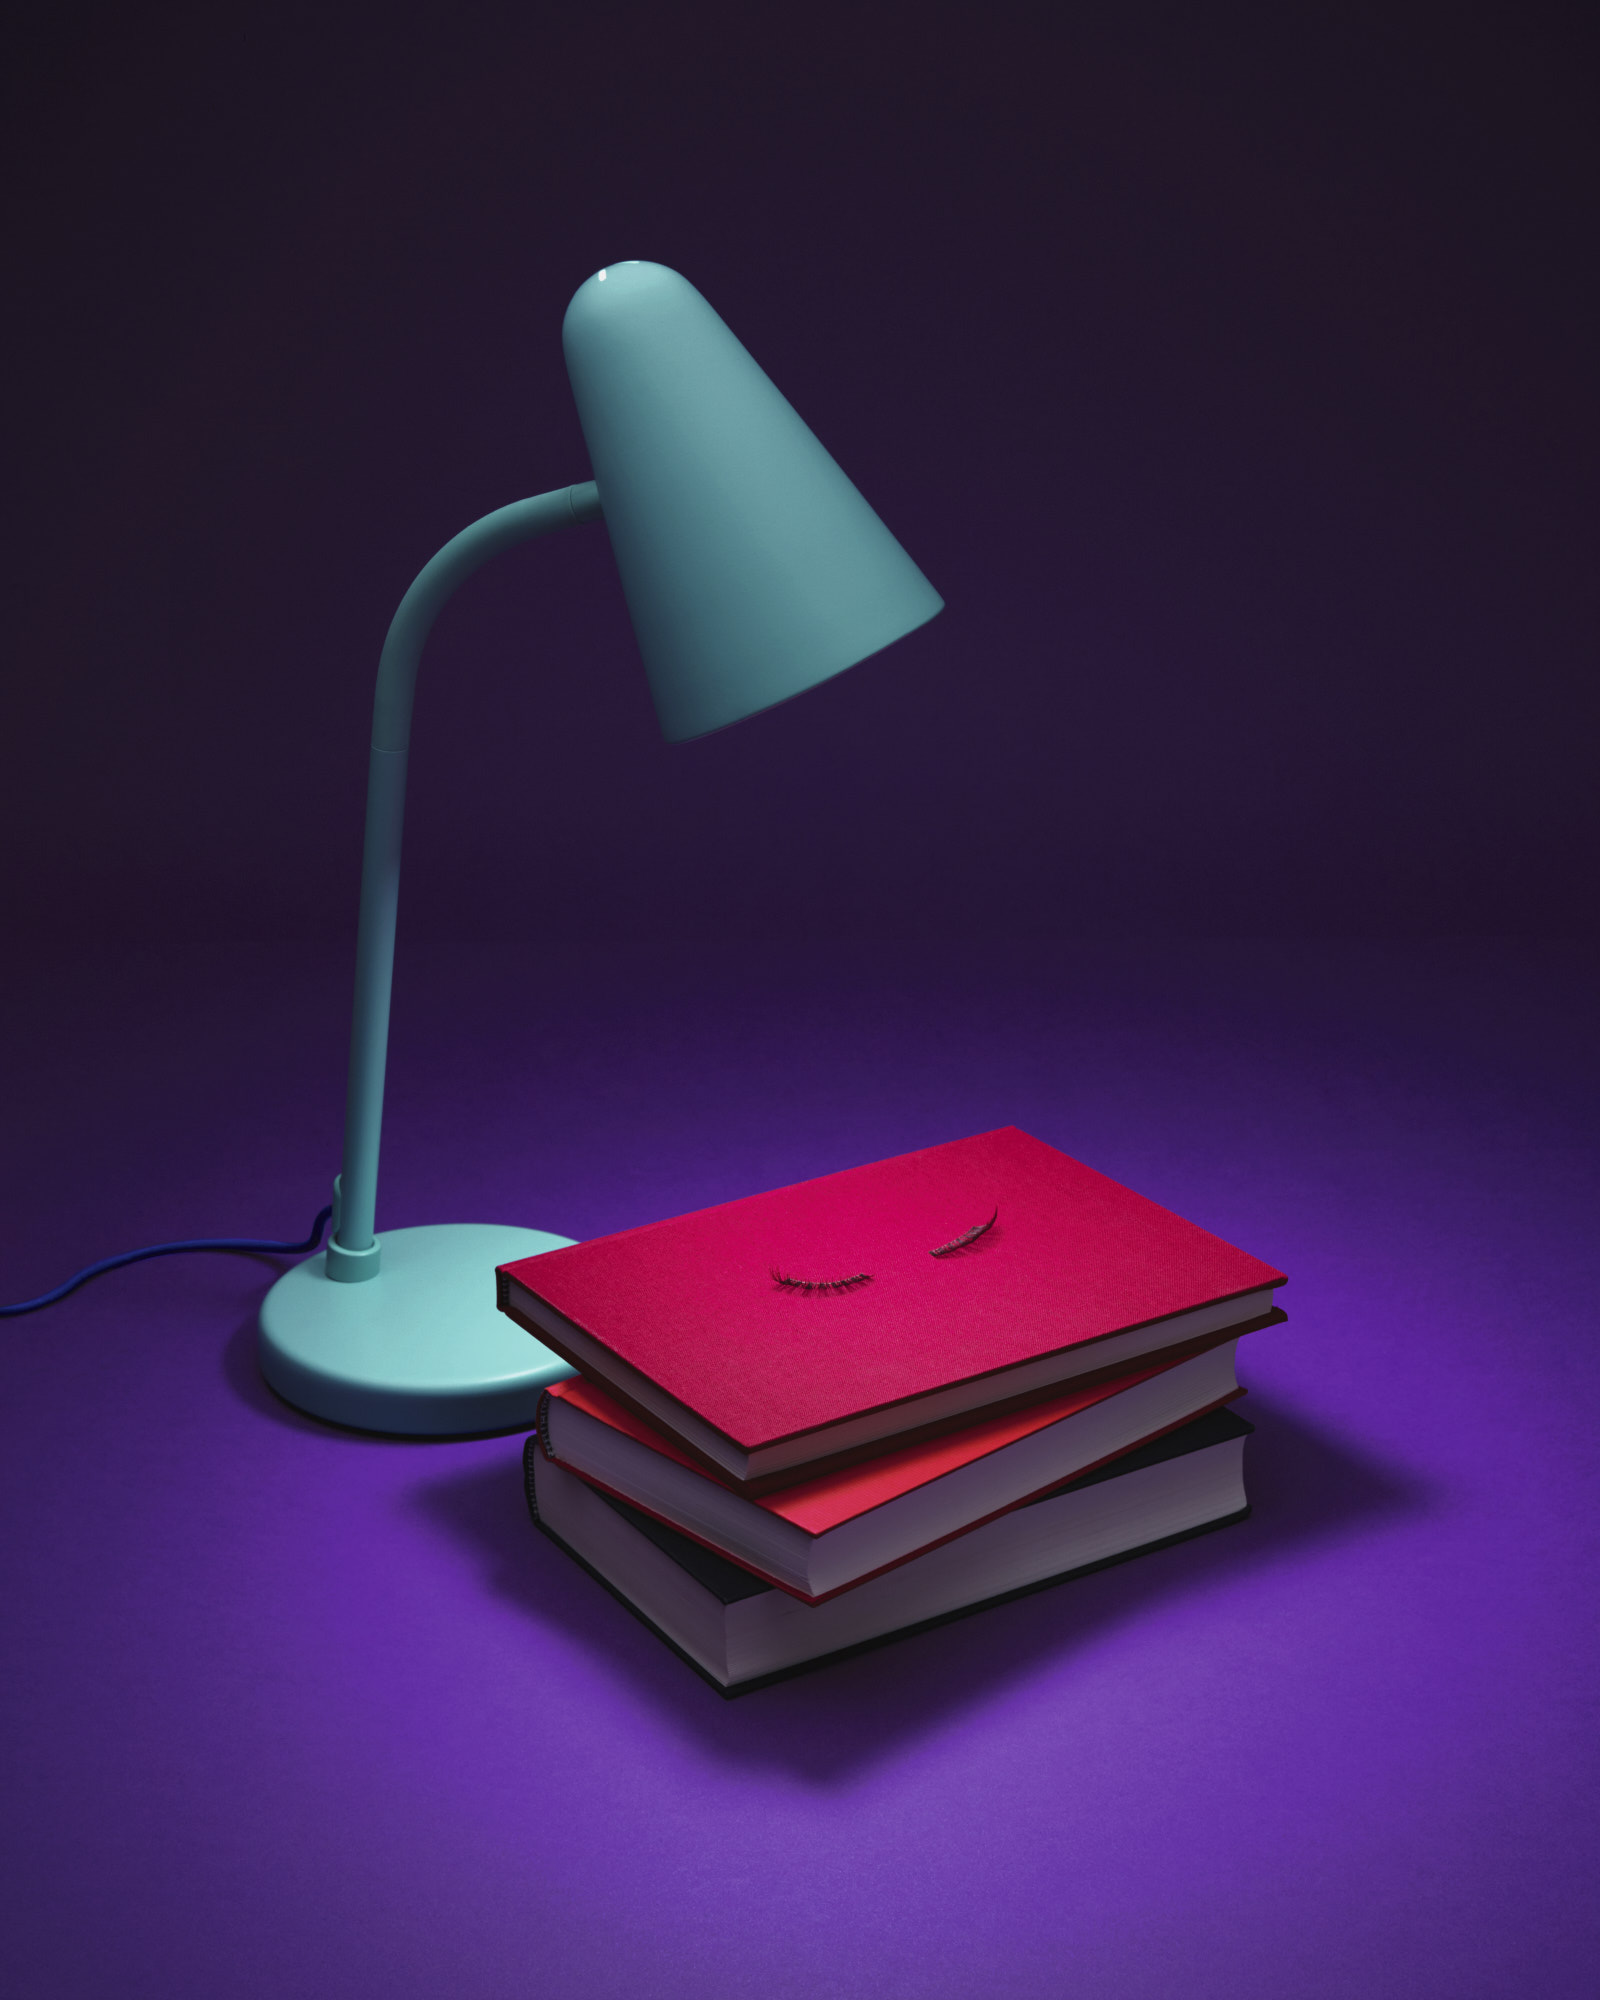 bernd-westphal-stillstars-cases-loved-kinderzimmer-lampe-Buch-still-life-photography-004